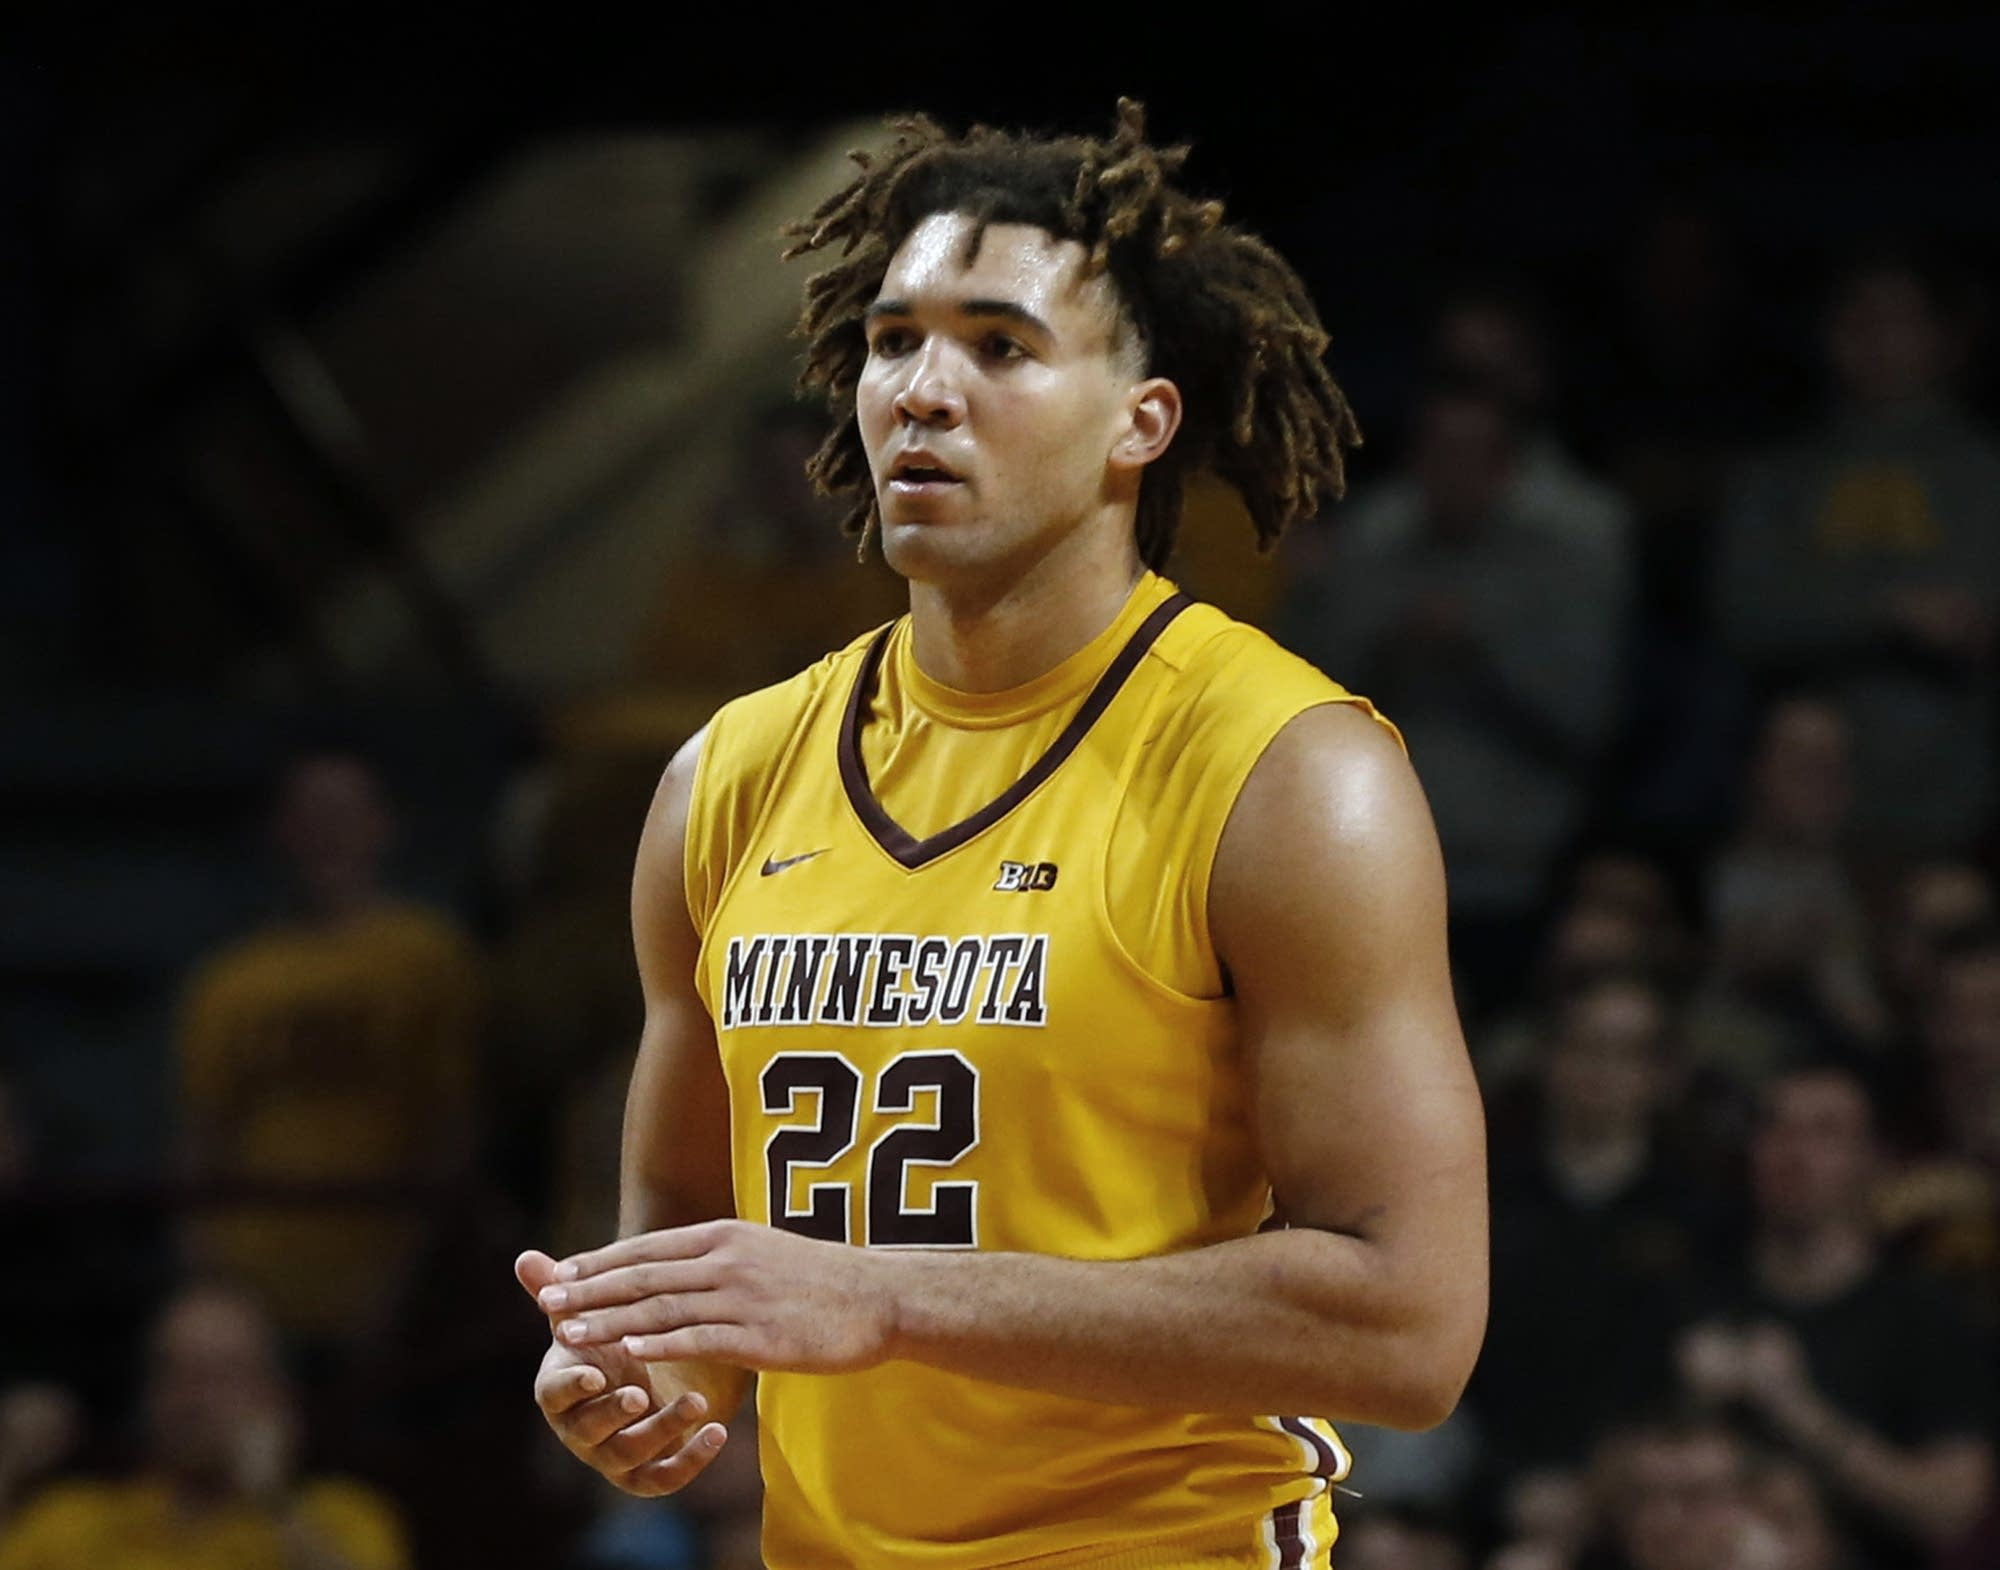 Reggie Lynch Faces Suspension from Minnesota for Sexual Misconduct Violation